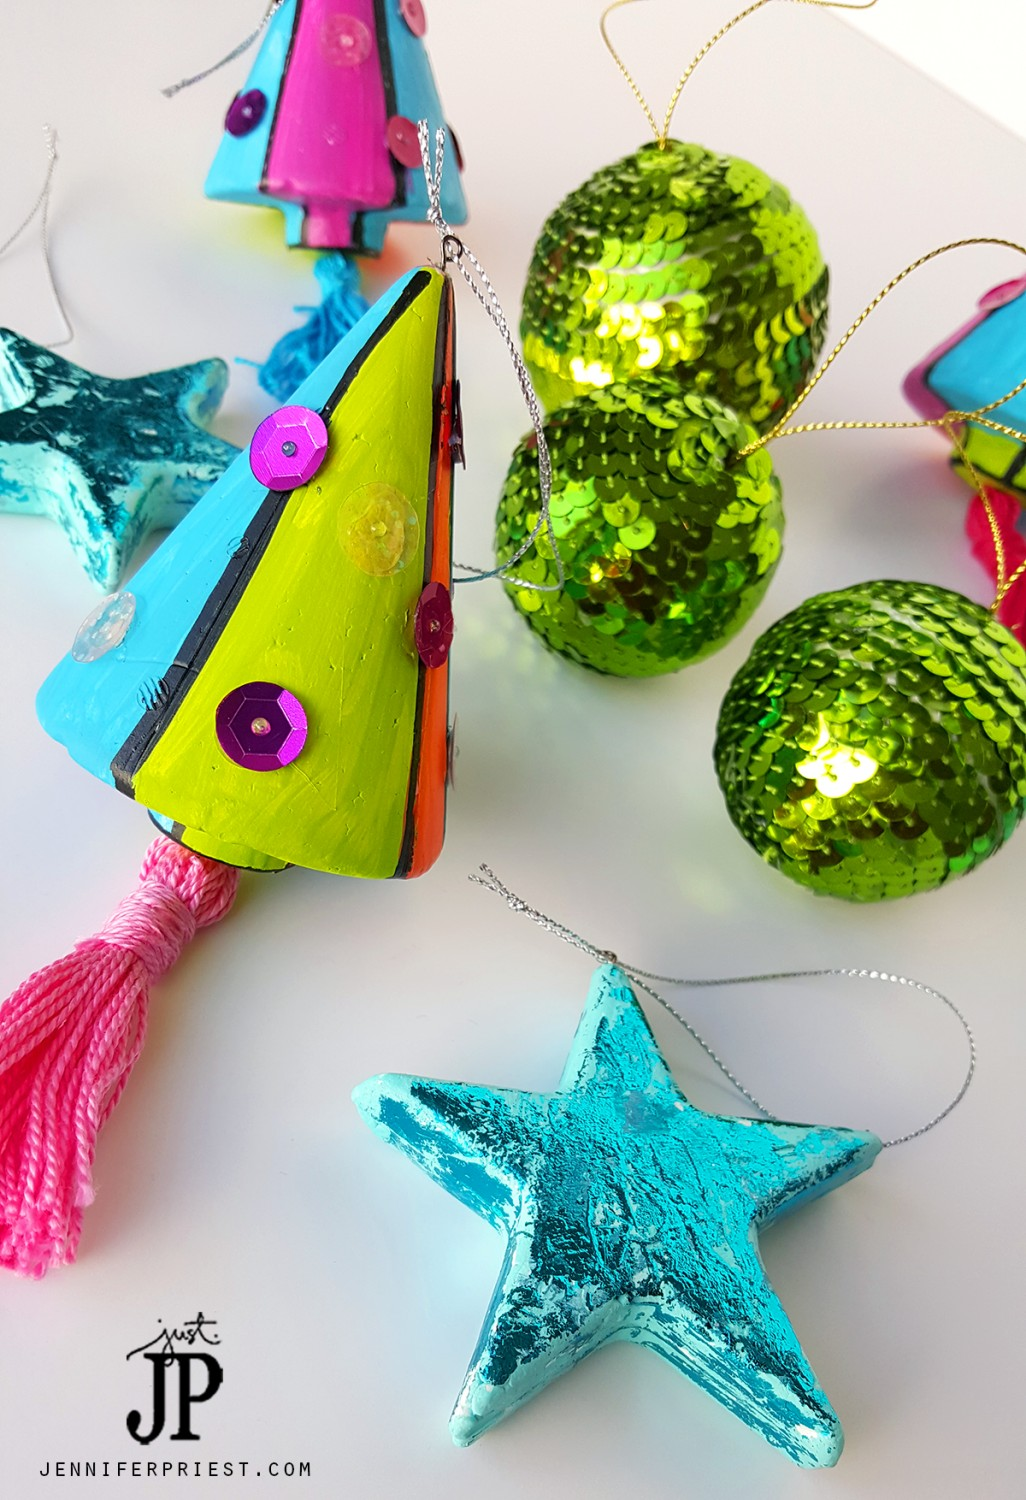 3-smoothfoam-christmas-ornaments-bright-colors-jpriest